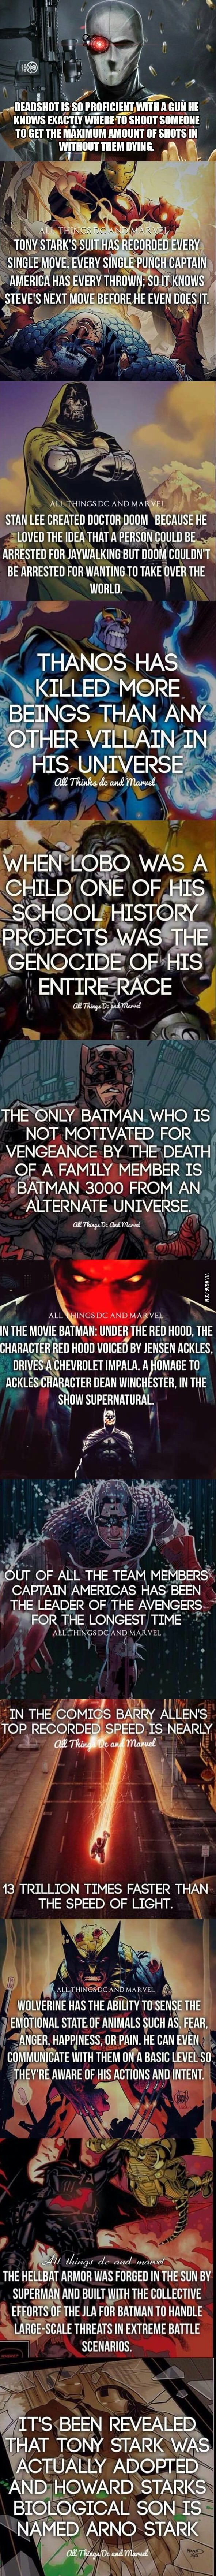 Marvel and Dc facts #4 - 9GAG